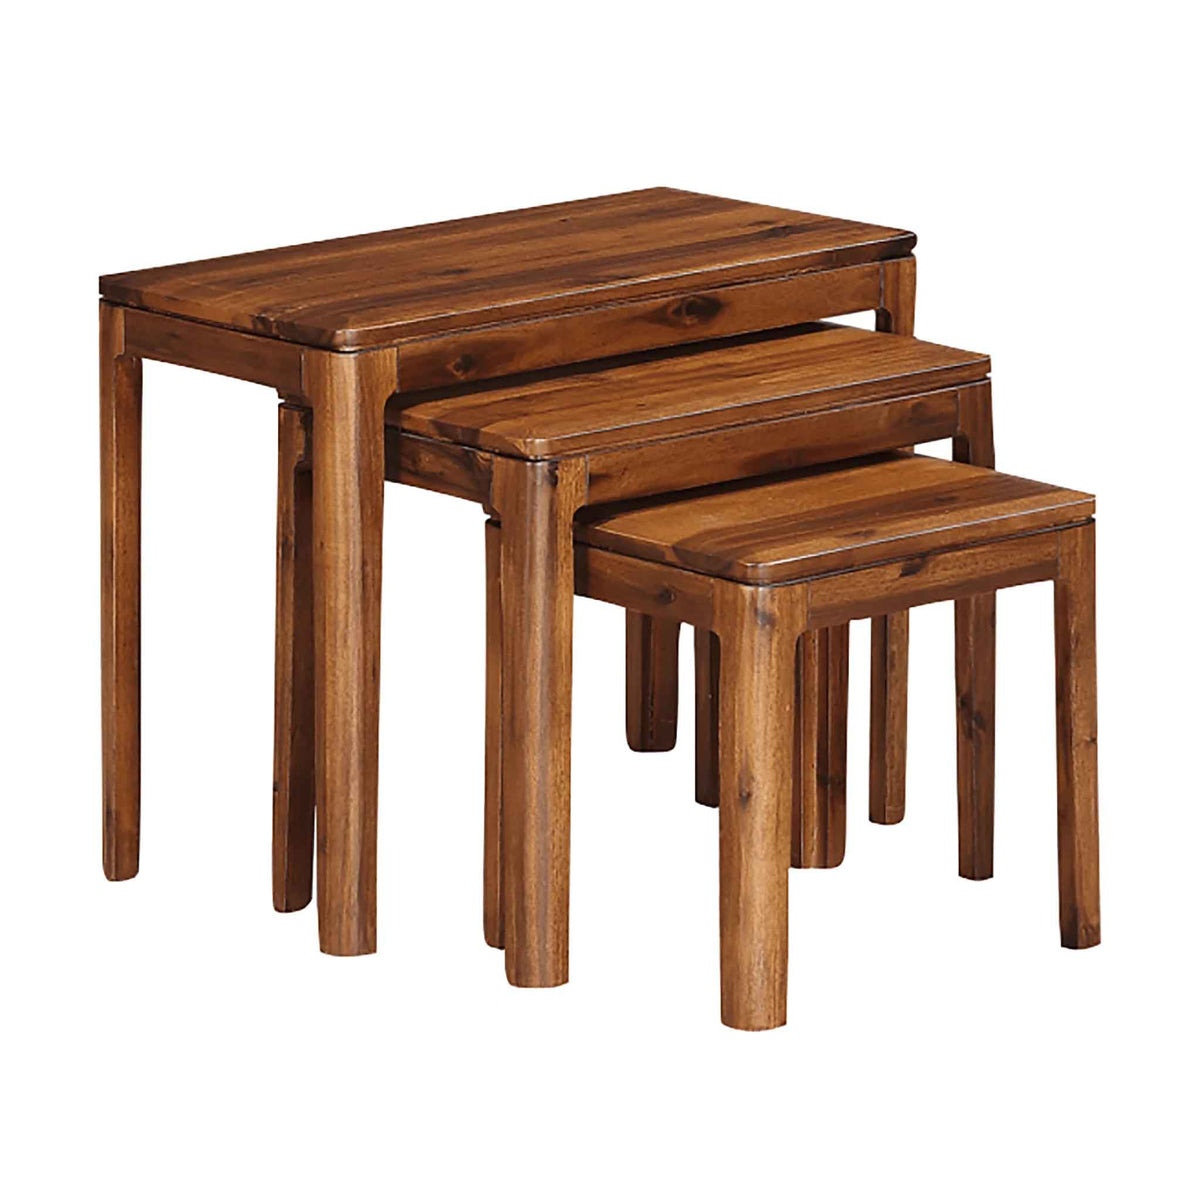 The Dunmore Acacia Dark Wood Nest of Tables from Roseland Furniture